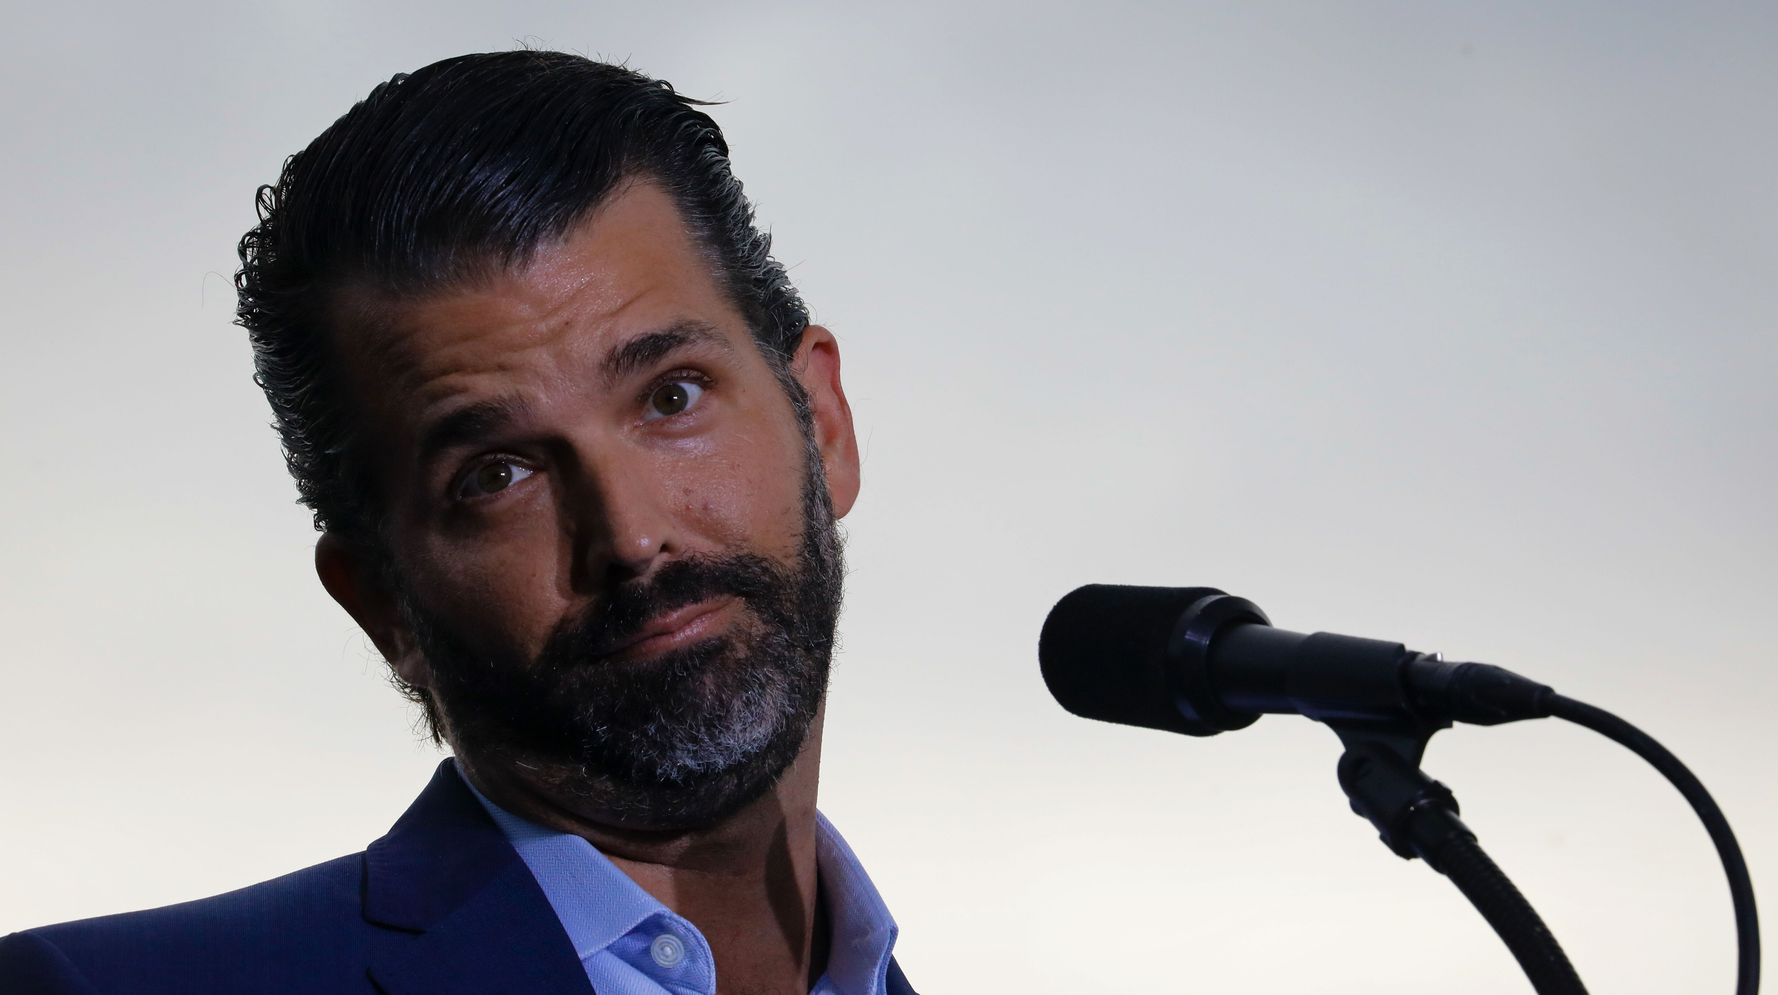 Trump Jr. Gets A Reality Check After Comparing U.S. To Communist Czechoslovakia